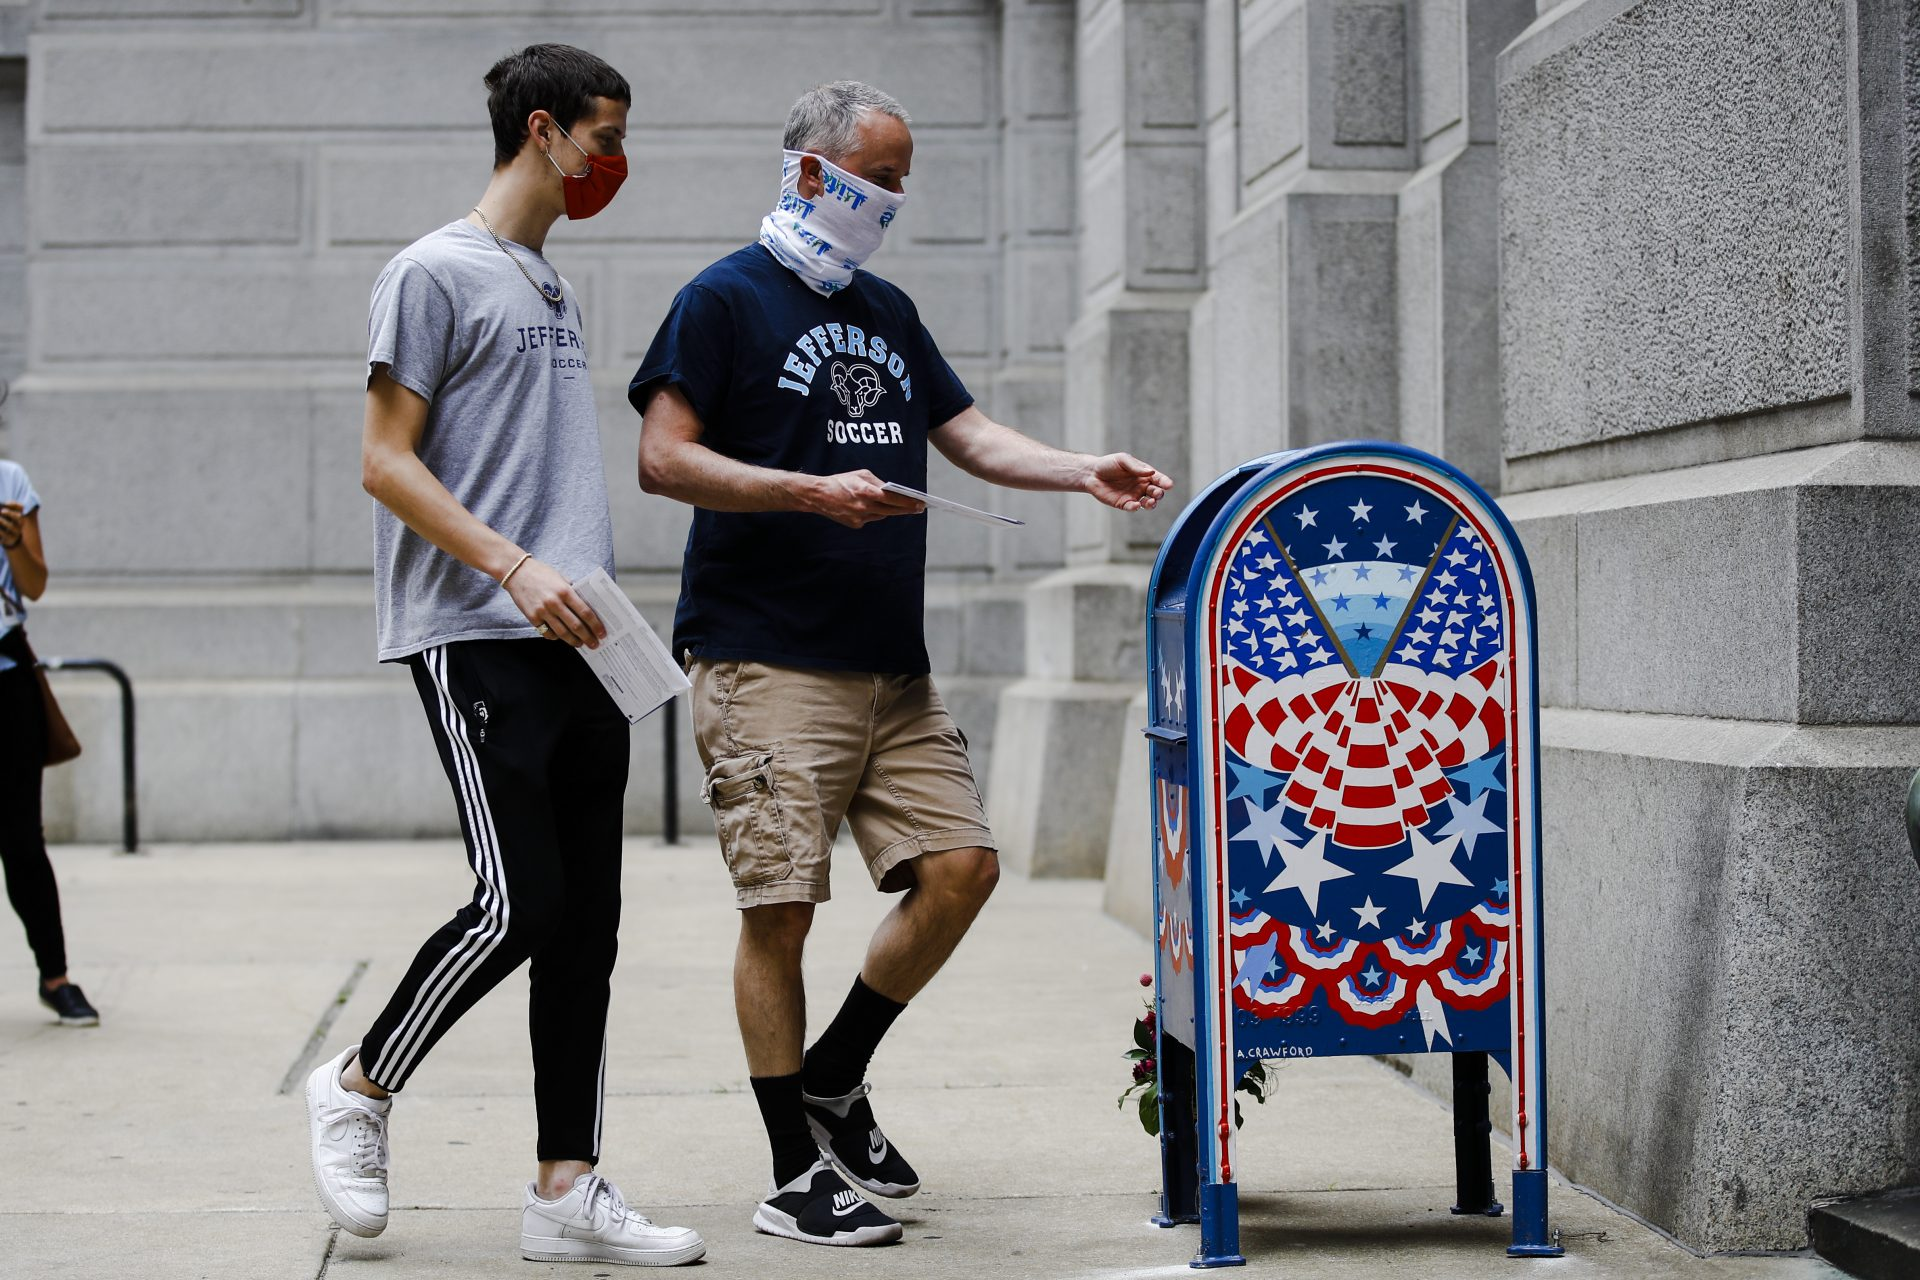 Benjamin Graff, center, and his son Jacob Graff, 19, drop off their mail-in ballots for the Pennsylvania primary election, in Philadelphia, Tuesday, June 2, 2020. (AP Photo/Matt Rourke)